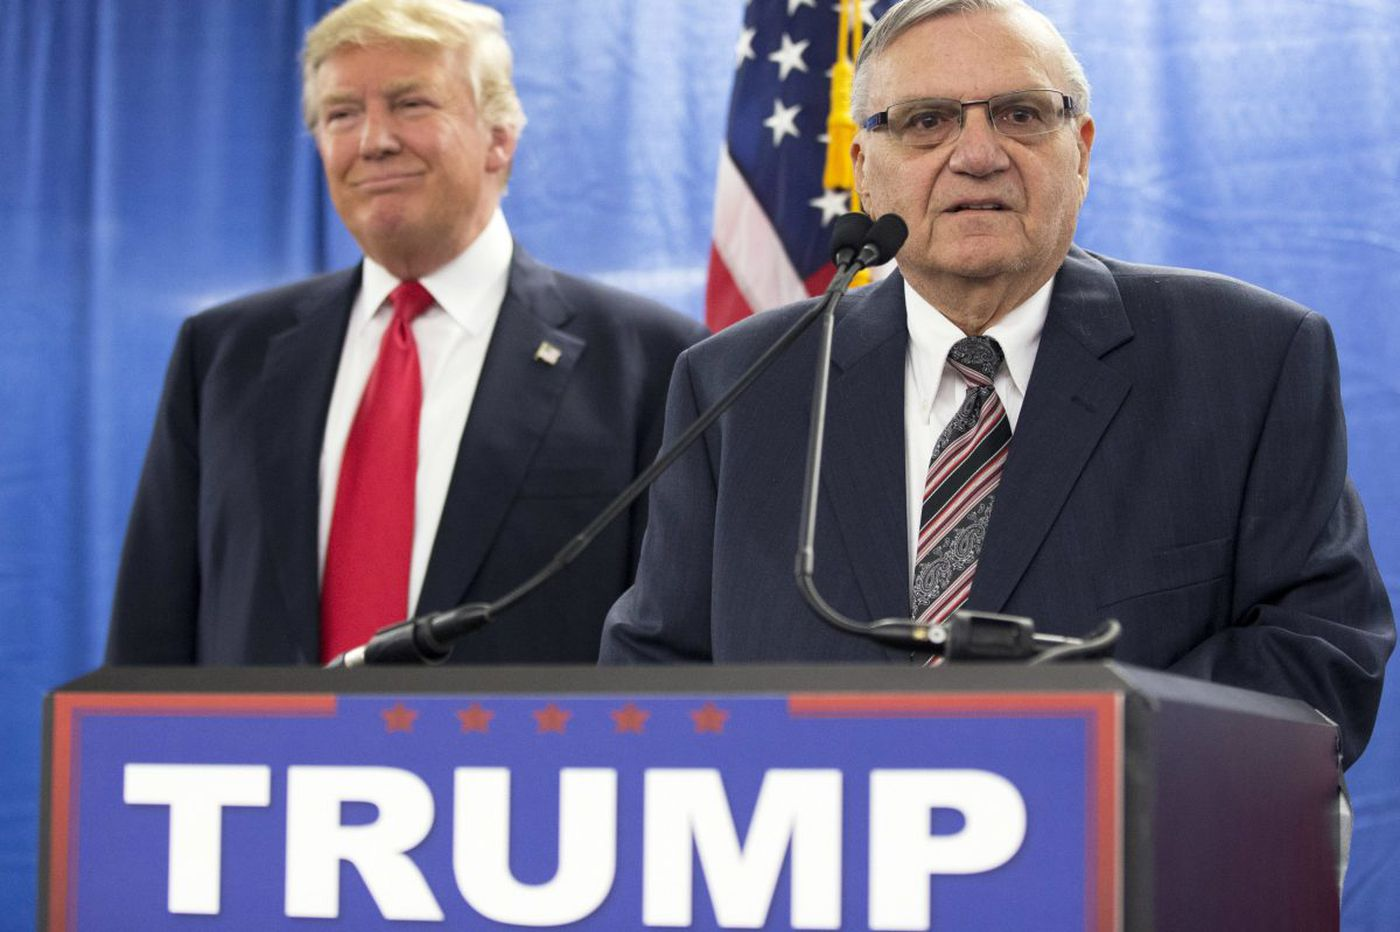 Pardon me, but Joe Arpaio is a bully and a disgrace